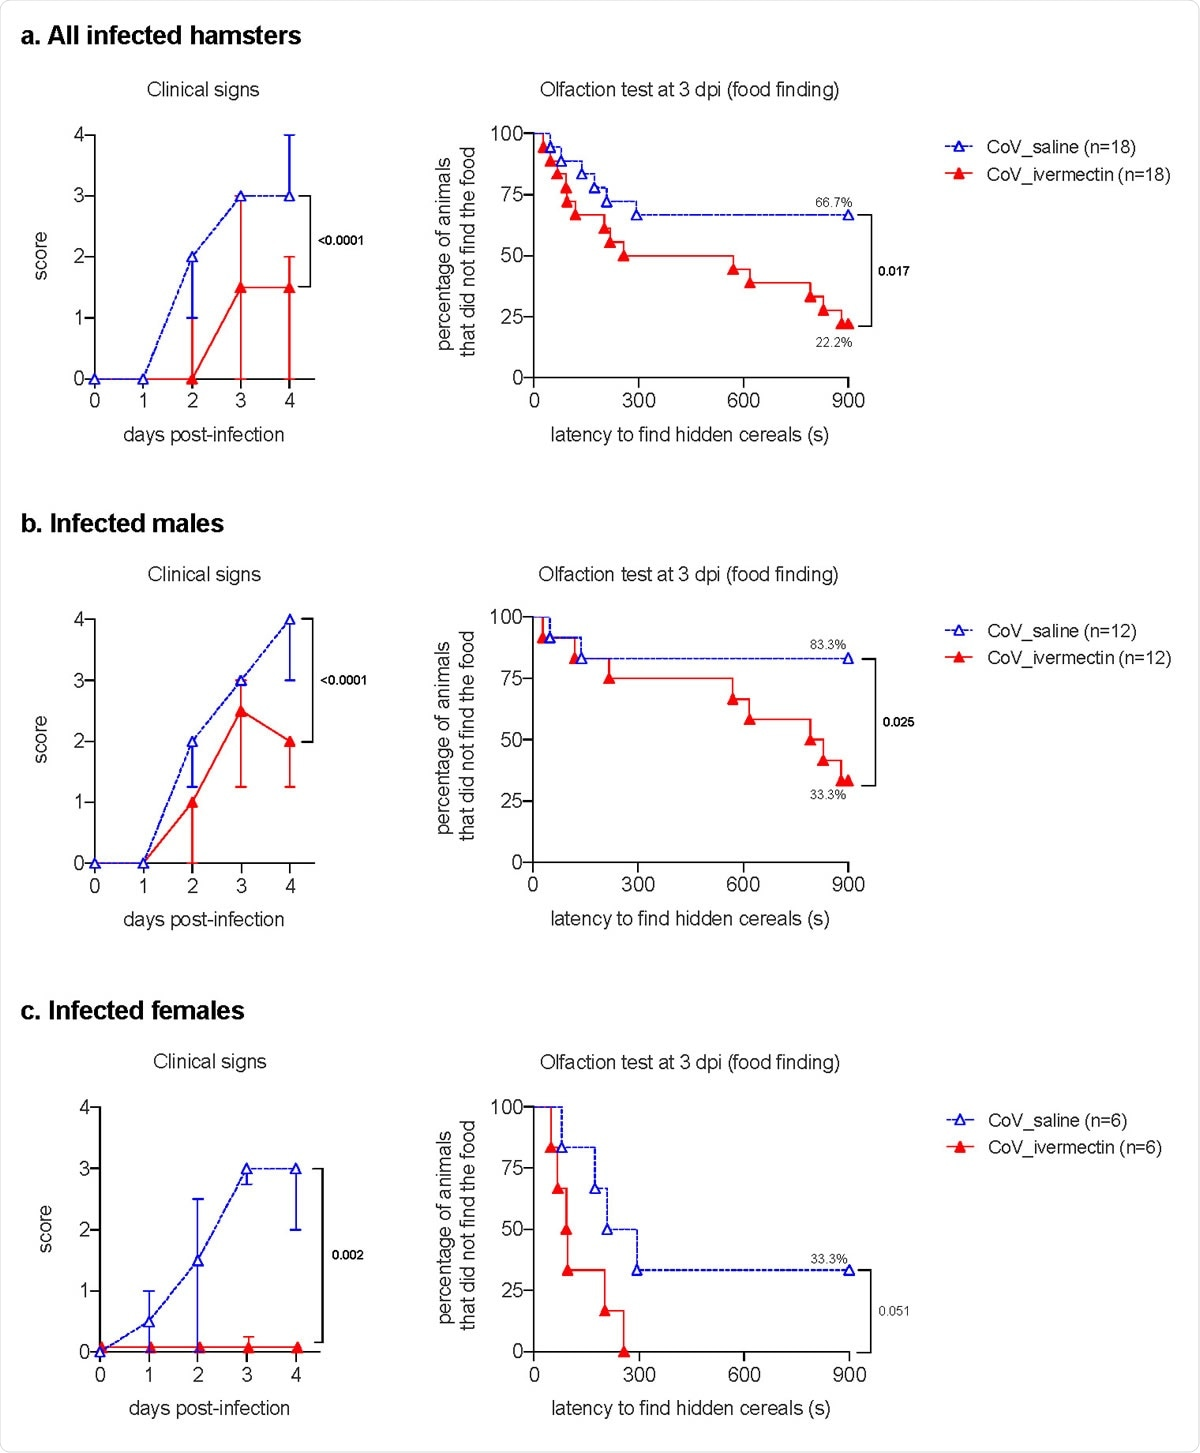 Clinical presentation and olfaction test of SARS-CoV-2-infected hamsters with and without ivermectin treatment. a. clinical signs and olfactory deficit in all infected hamsters. b, clinical signs and olfactory deficit in infected male hamsters only. c, clinical signs and olfactory deficit in infected female hamsters only. The clinical score is based on a cumulative 0-4 scale: ruffled fur; slow movements; apathy; stress when manipulated. The olfaction test is based on the buried food finding test. Curves represent the percentage of animals that did not find the buried food. Food finding assays were performed at 3 days post-infection. Mann-Whitney test at 4 dpi (clinical signs) and Log rank (Mantel-Cox) test (olfaction tests). The p value is indicated in bold when significant at a 0.05 threshold. Symbols indicate the median ± interquartile range. Data were obtained from three independent experiments for males and two independent experiments for females.